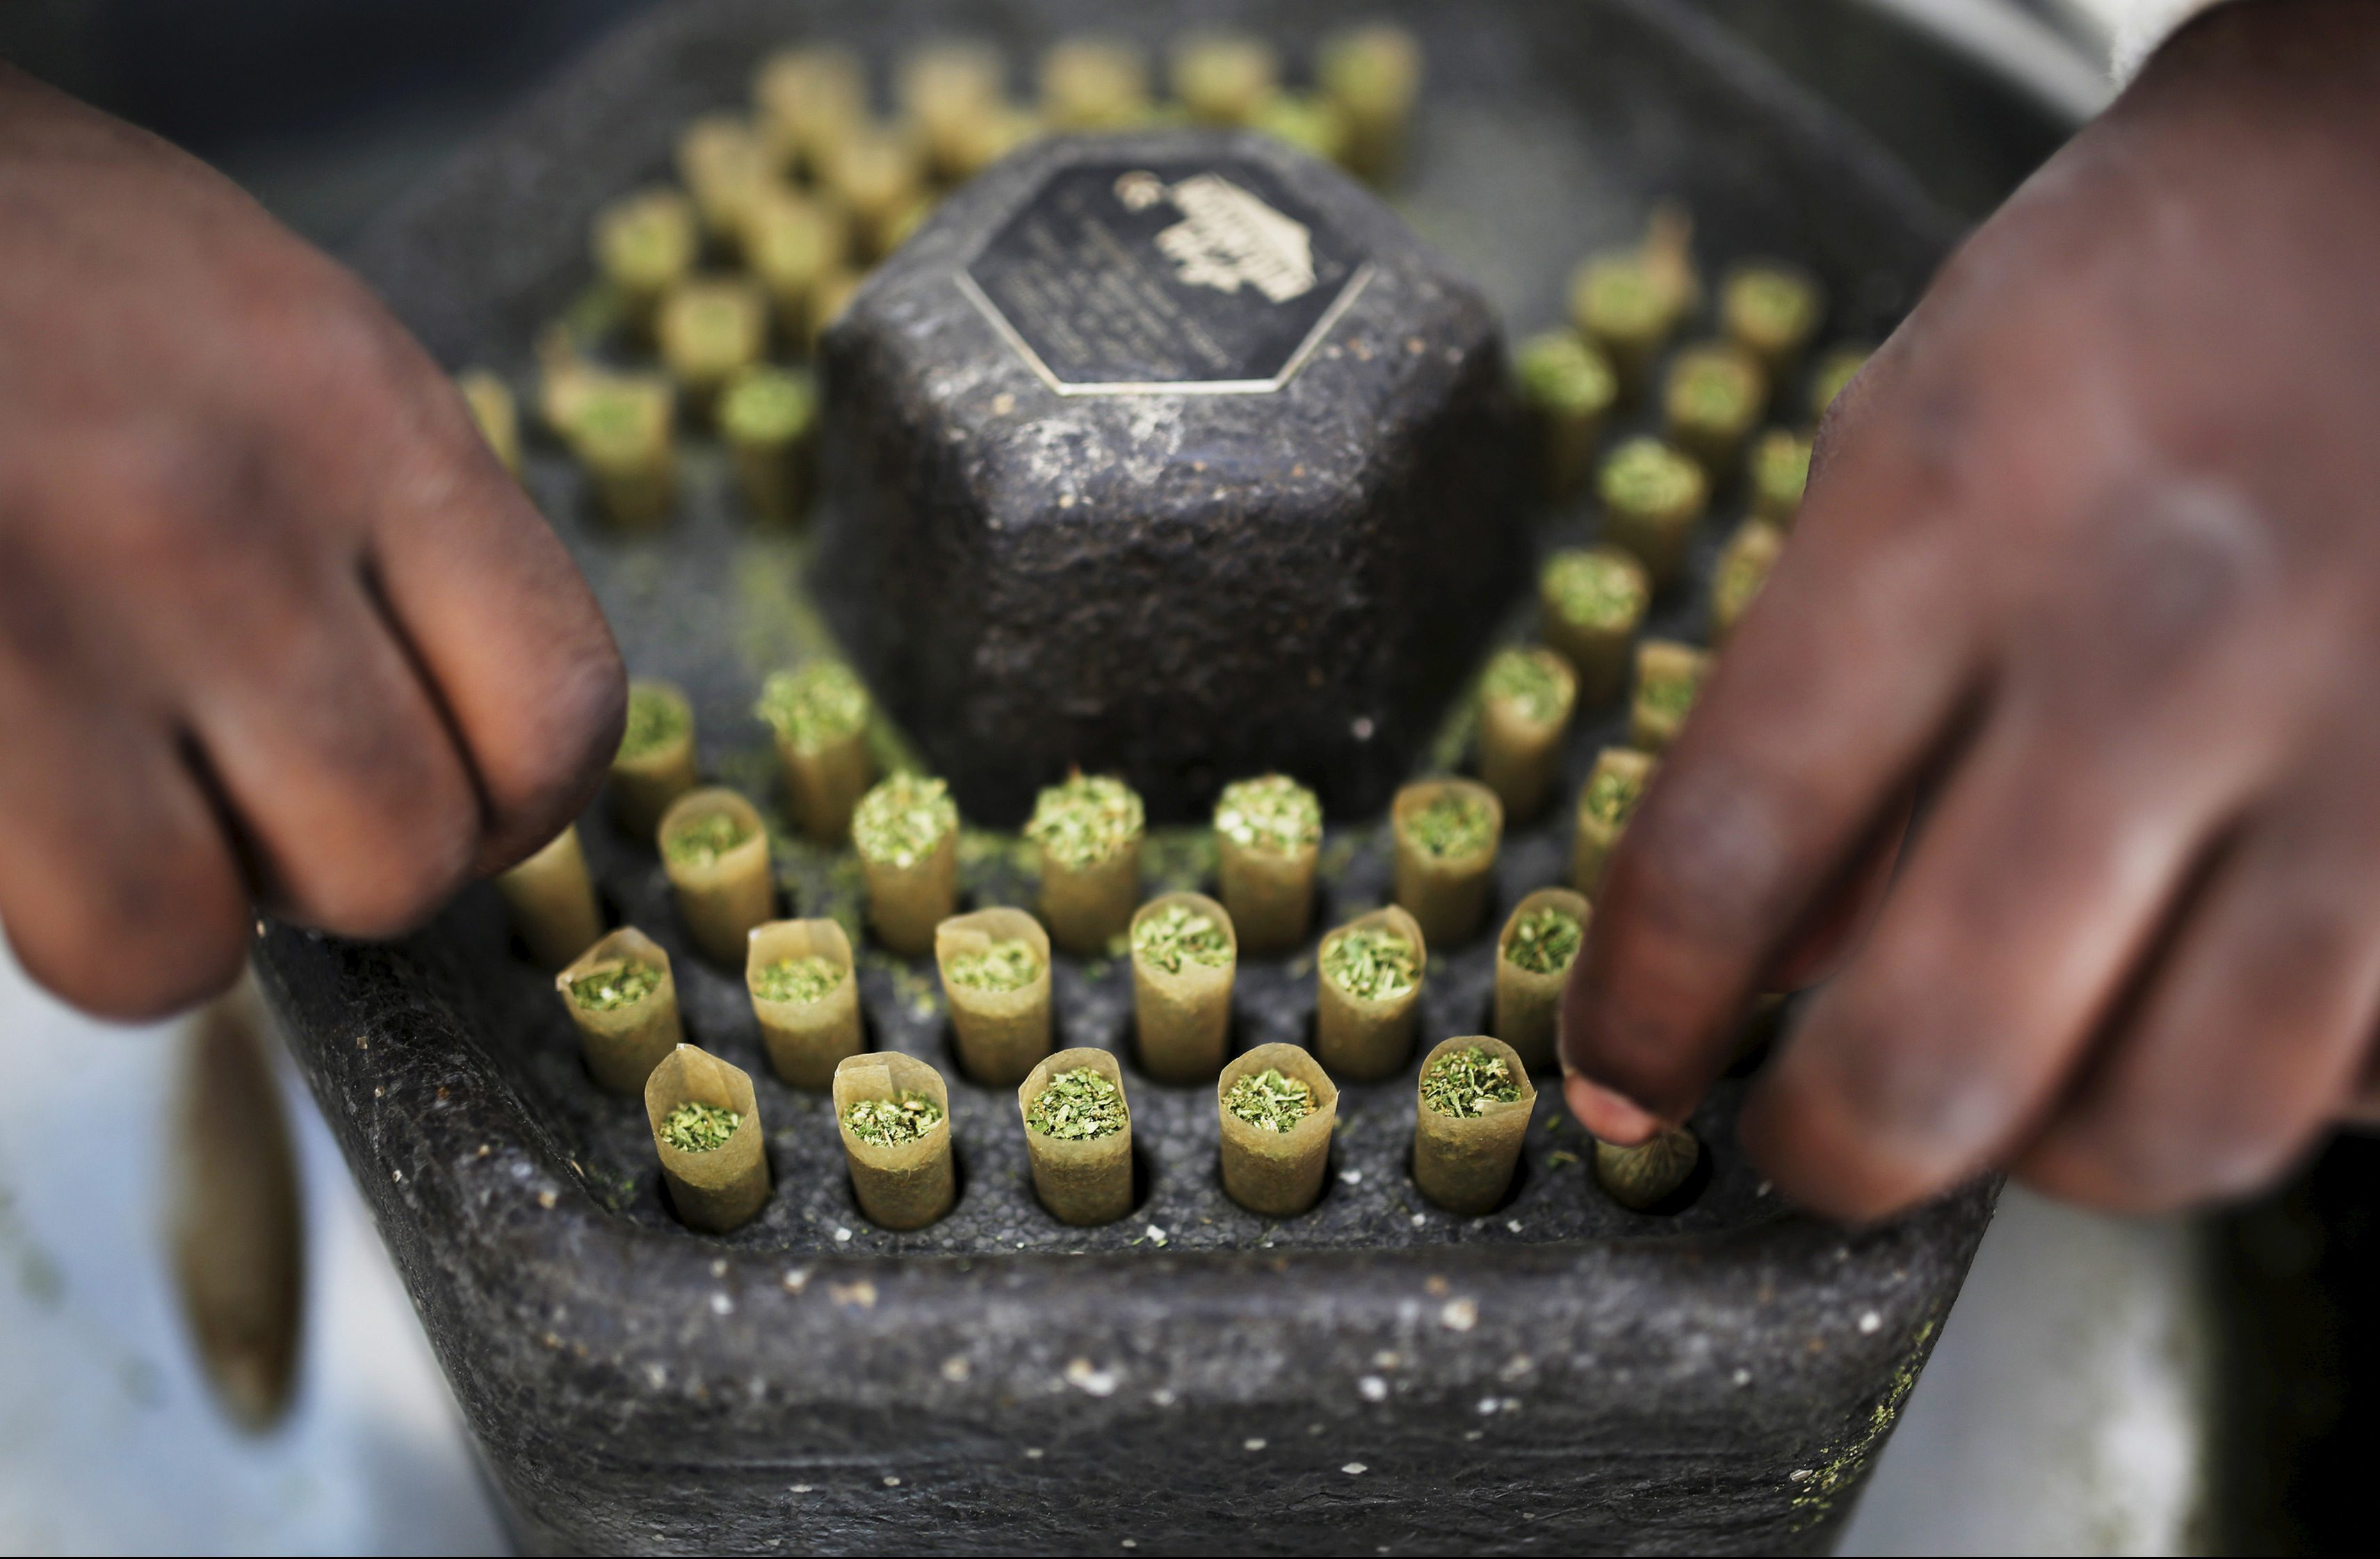 A worker places newly prepared cigarettes filled with medical marijuana at a plantation near the northern Israeli town of Nazareth, in this May 28, 2013 file picture. REUTERS/Amir Cohen/Files - RTSCMIK